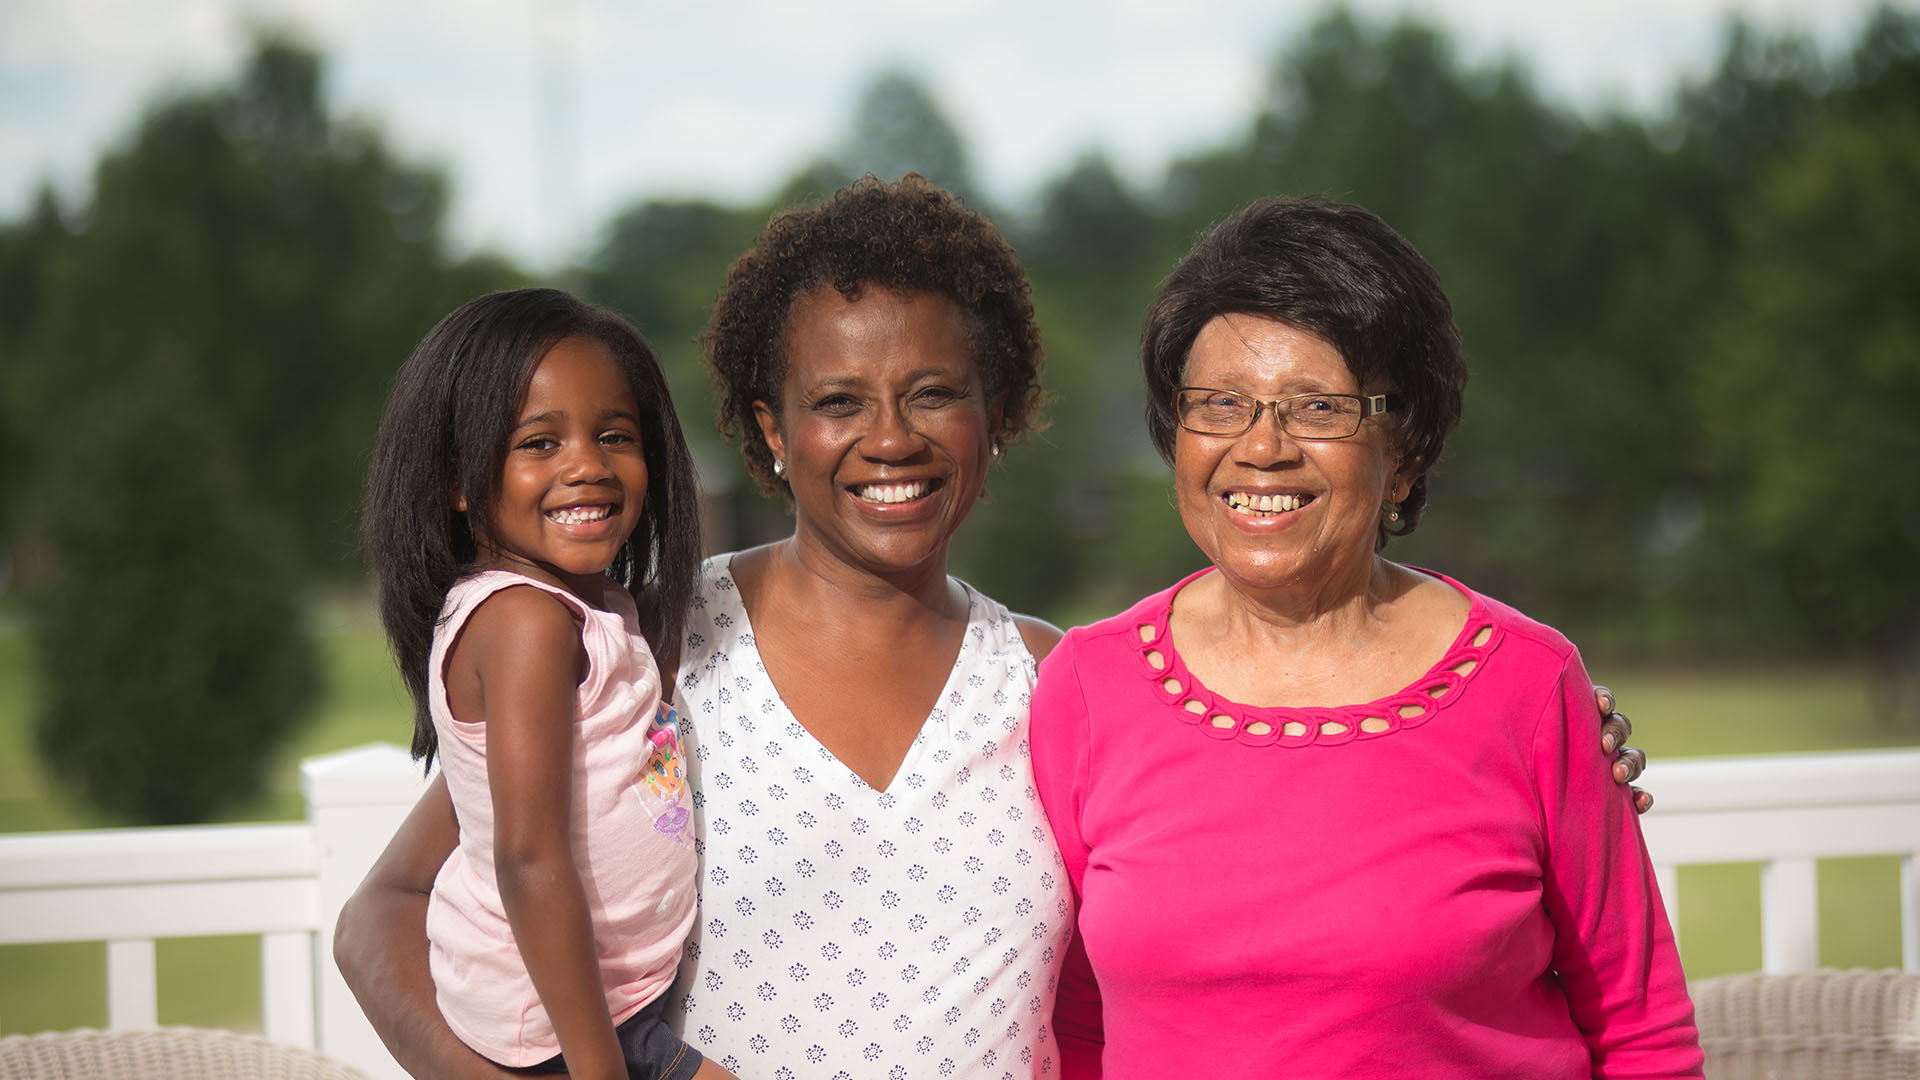 Three generations of black women smile while outside